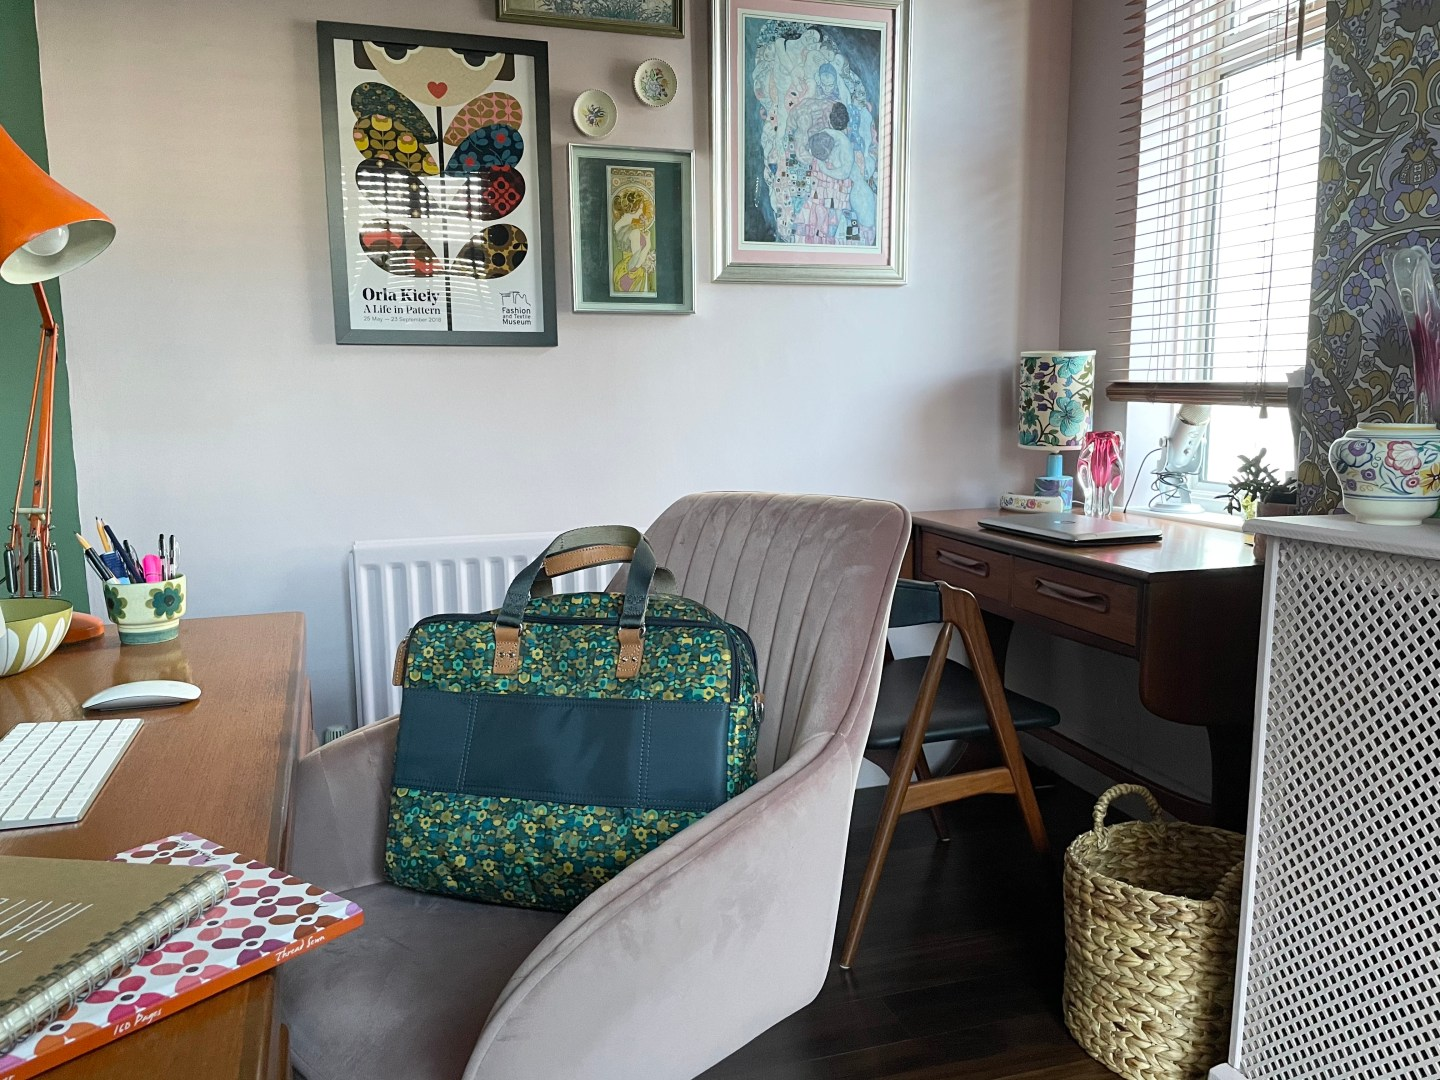 My Home Office With Vintage 1960s Wallpaper & Annie Sloan Paint